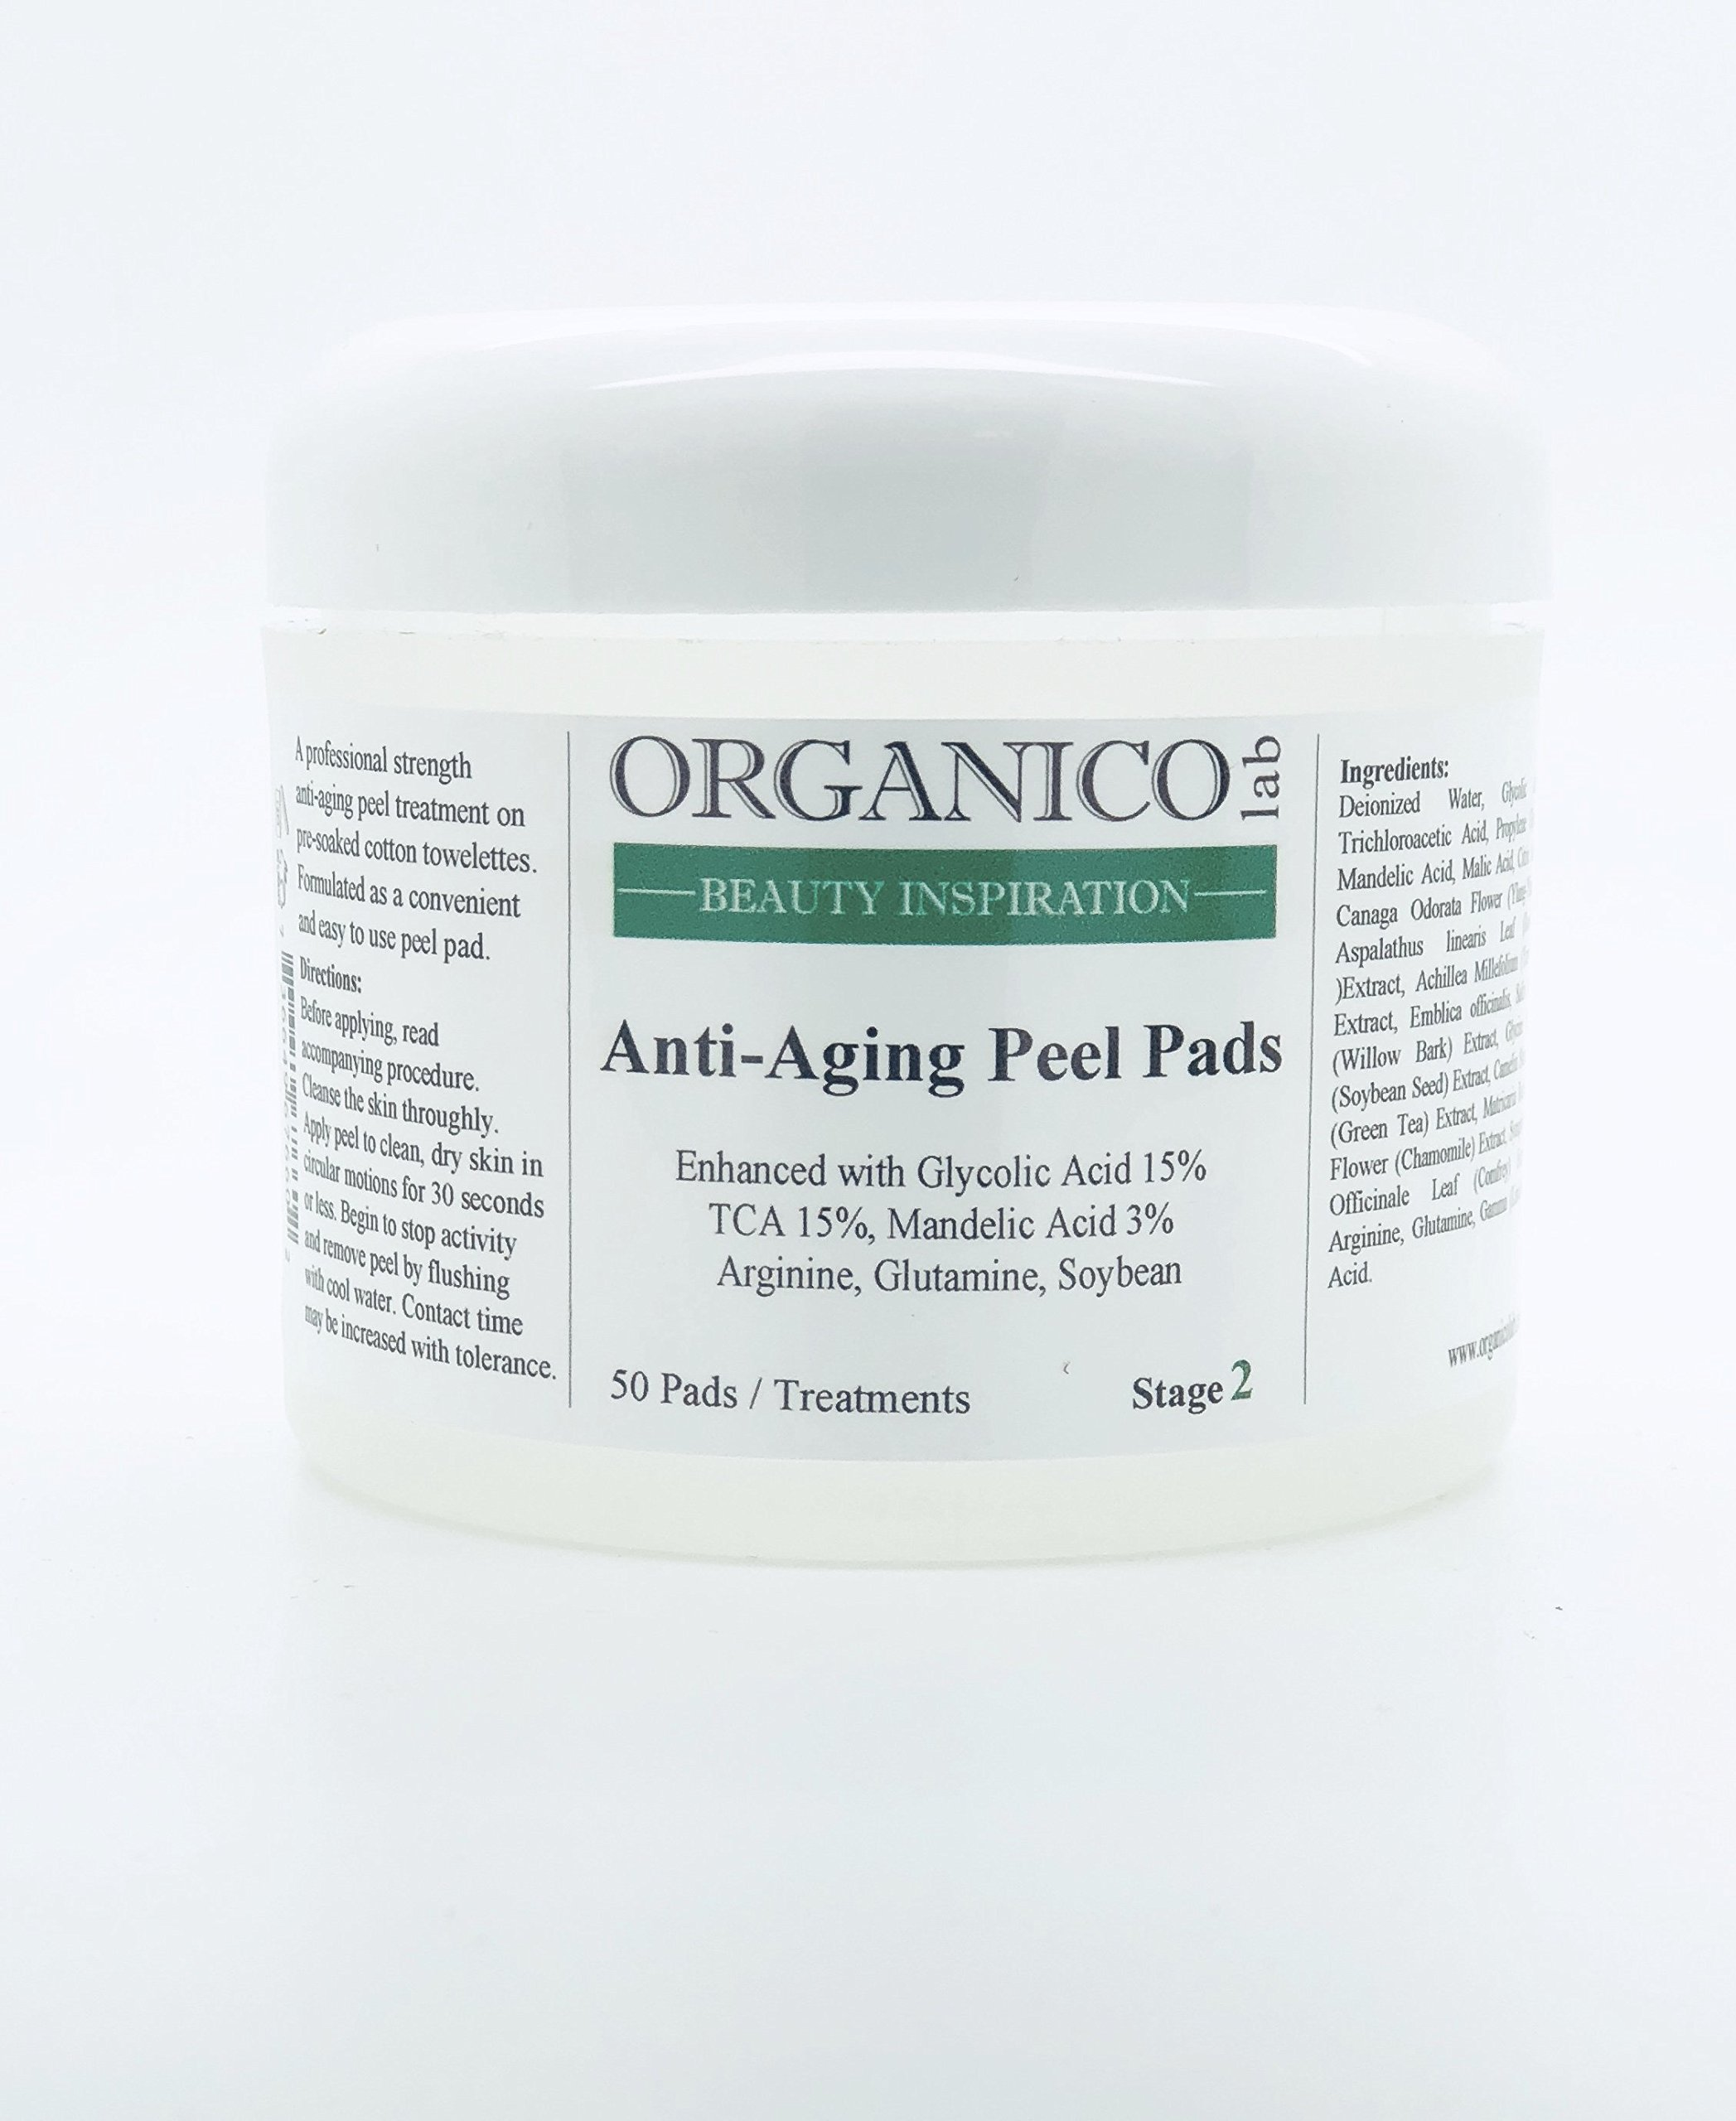 ORGANICOLAB, Anti-Aging Peel Pads Enhanced with Glycolic Acid 15% | TCA 15% | Mandelic Acid 3% | Arginine | Glutamine | Soybean, STAGE 2, 1 Fl.oz